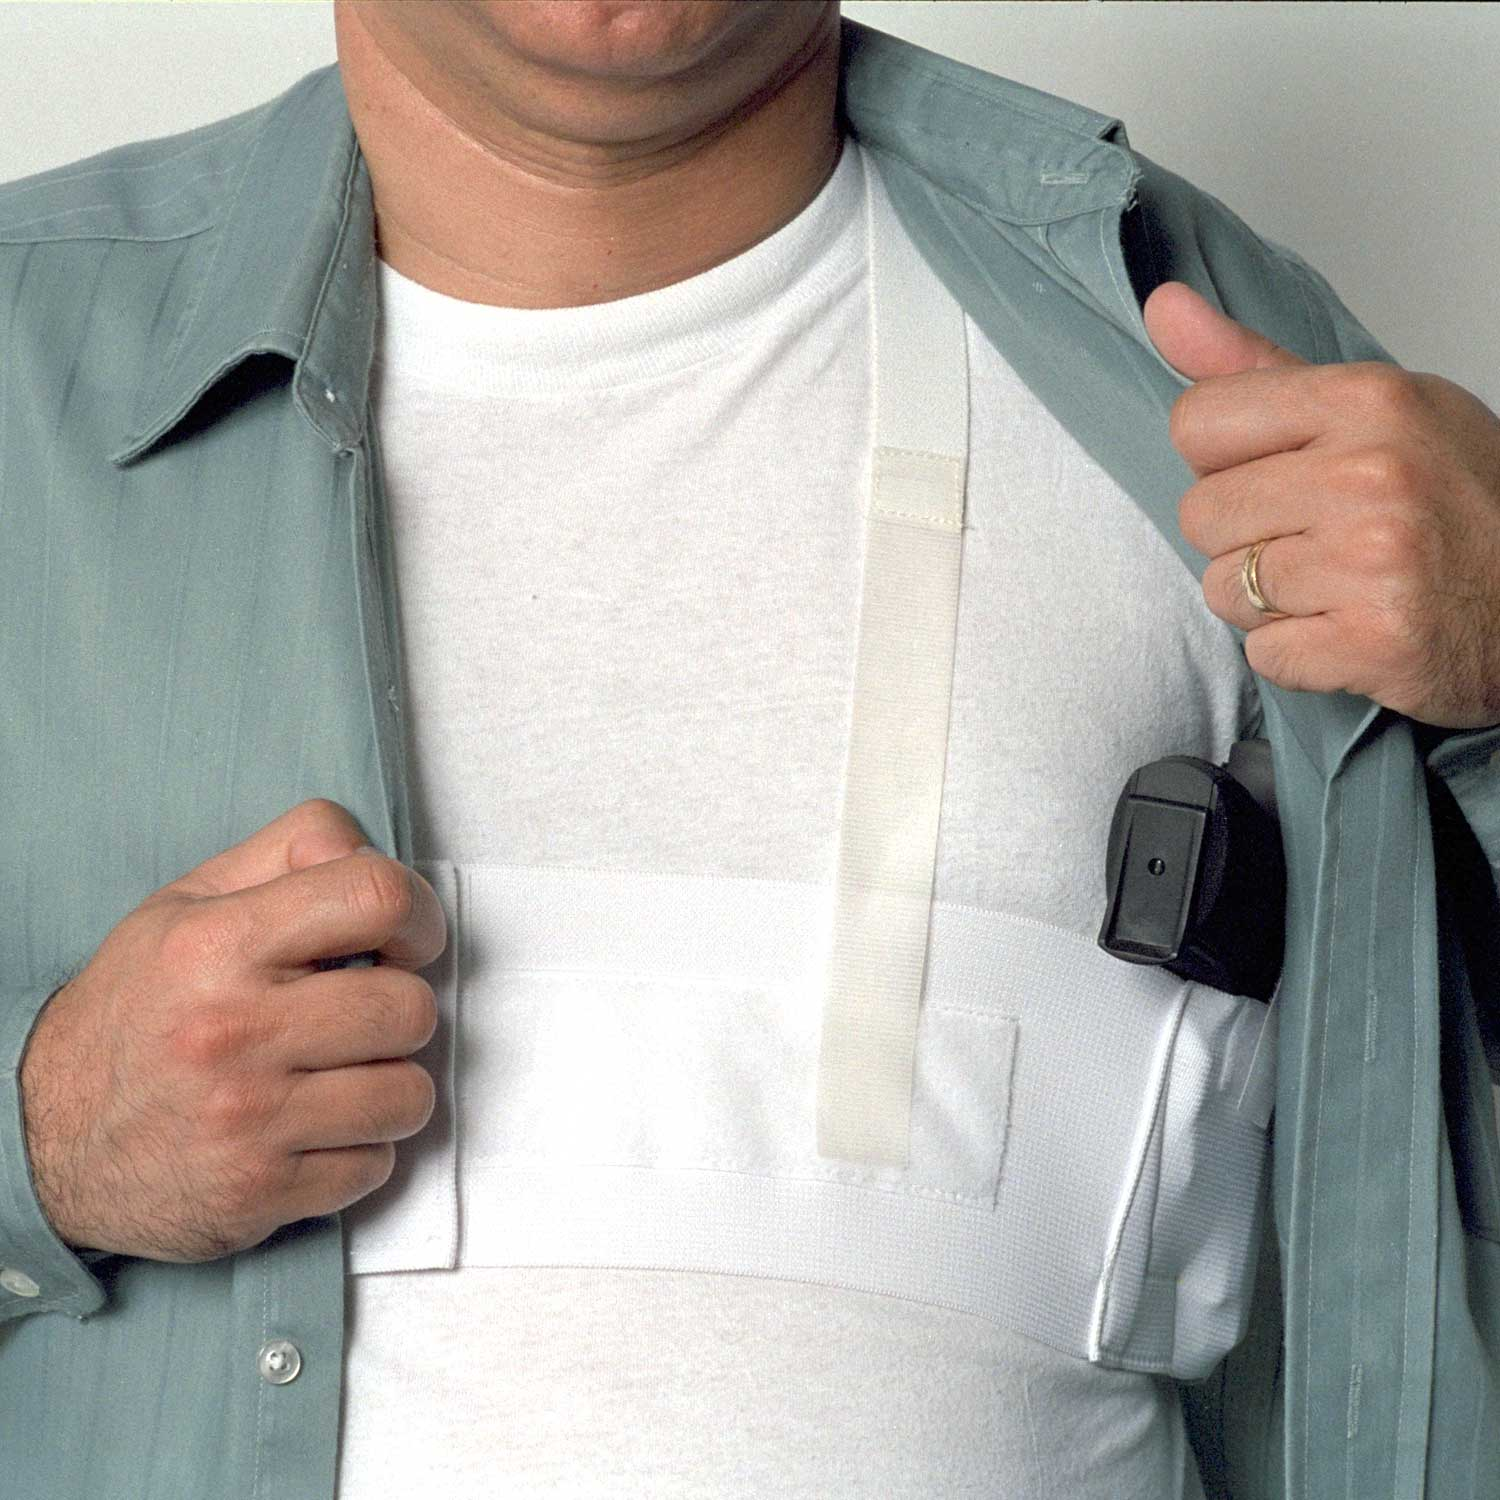 Shoulder Gun Holster for concealed carry